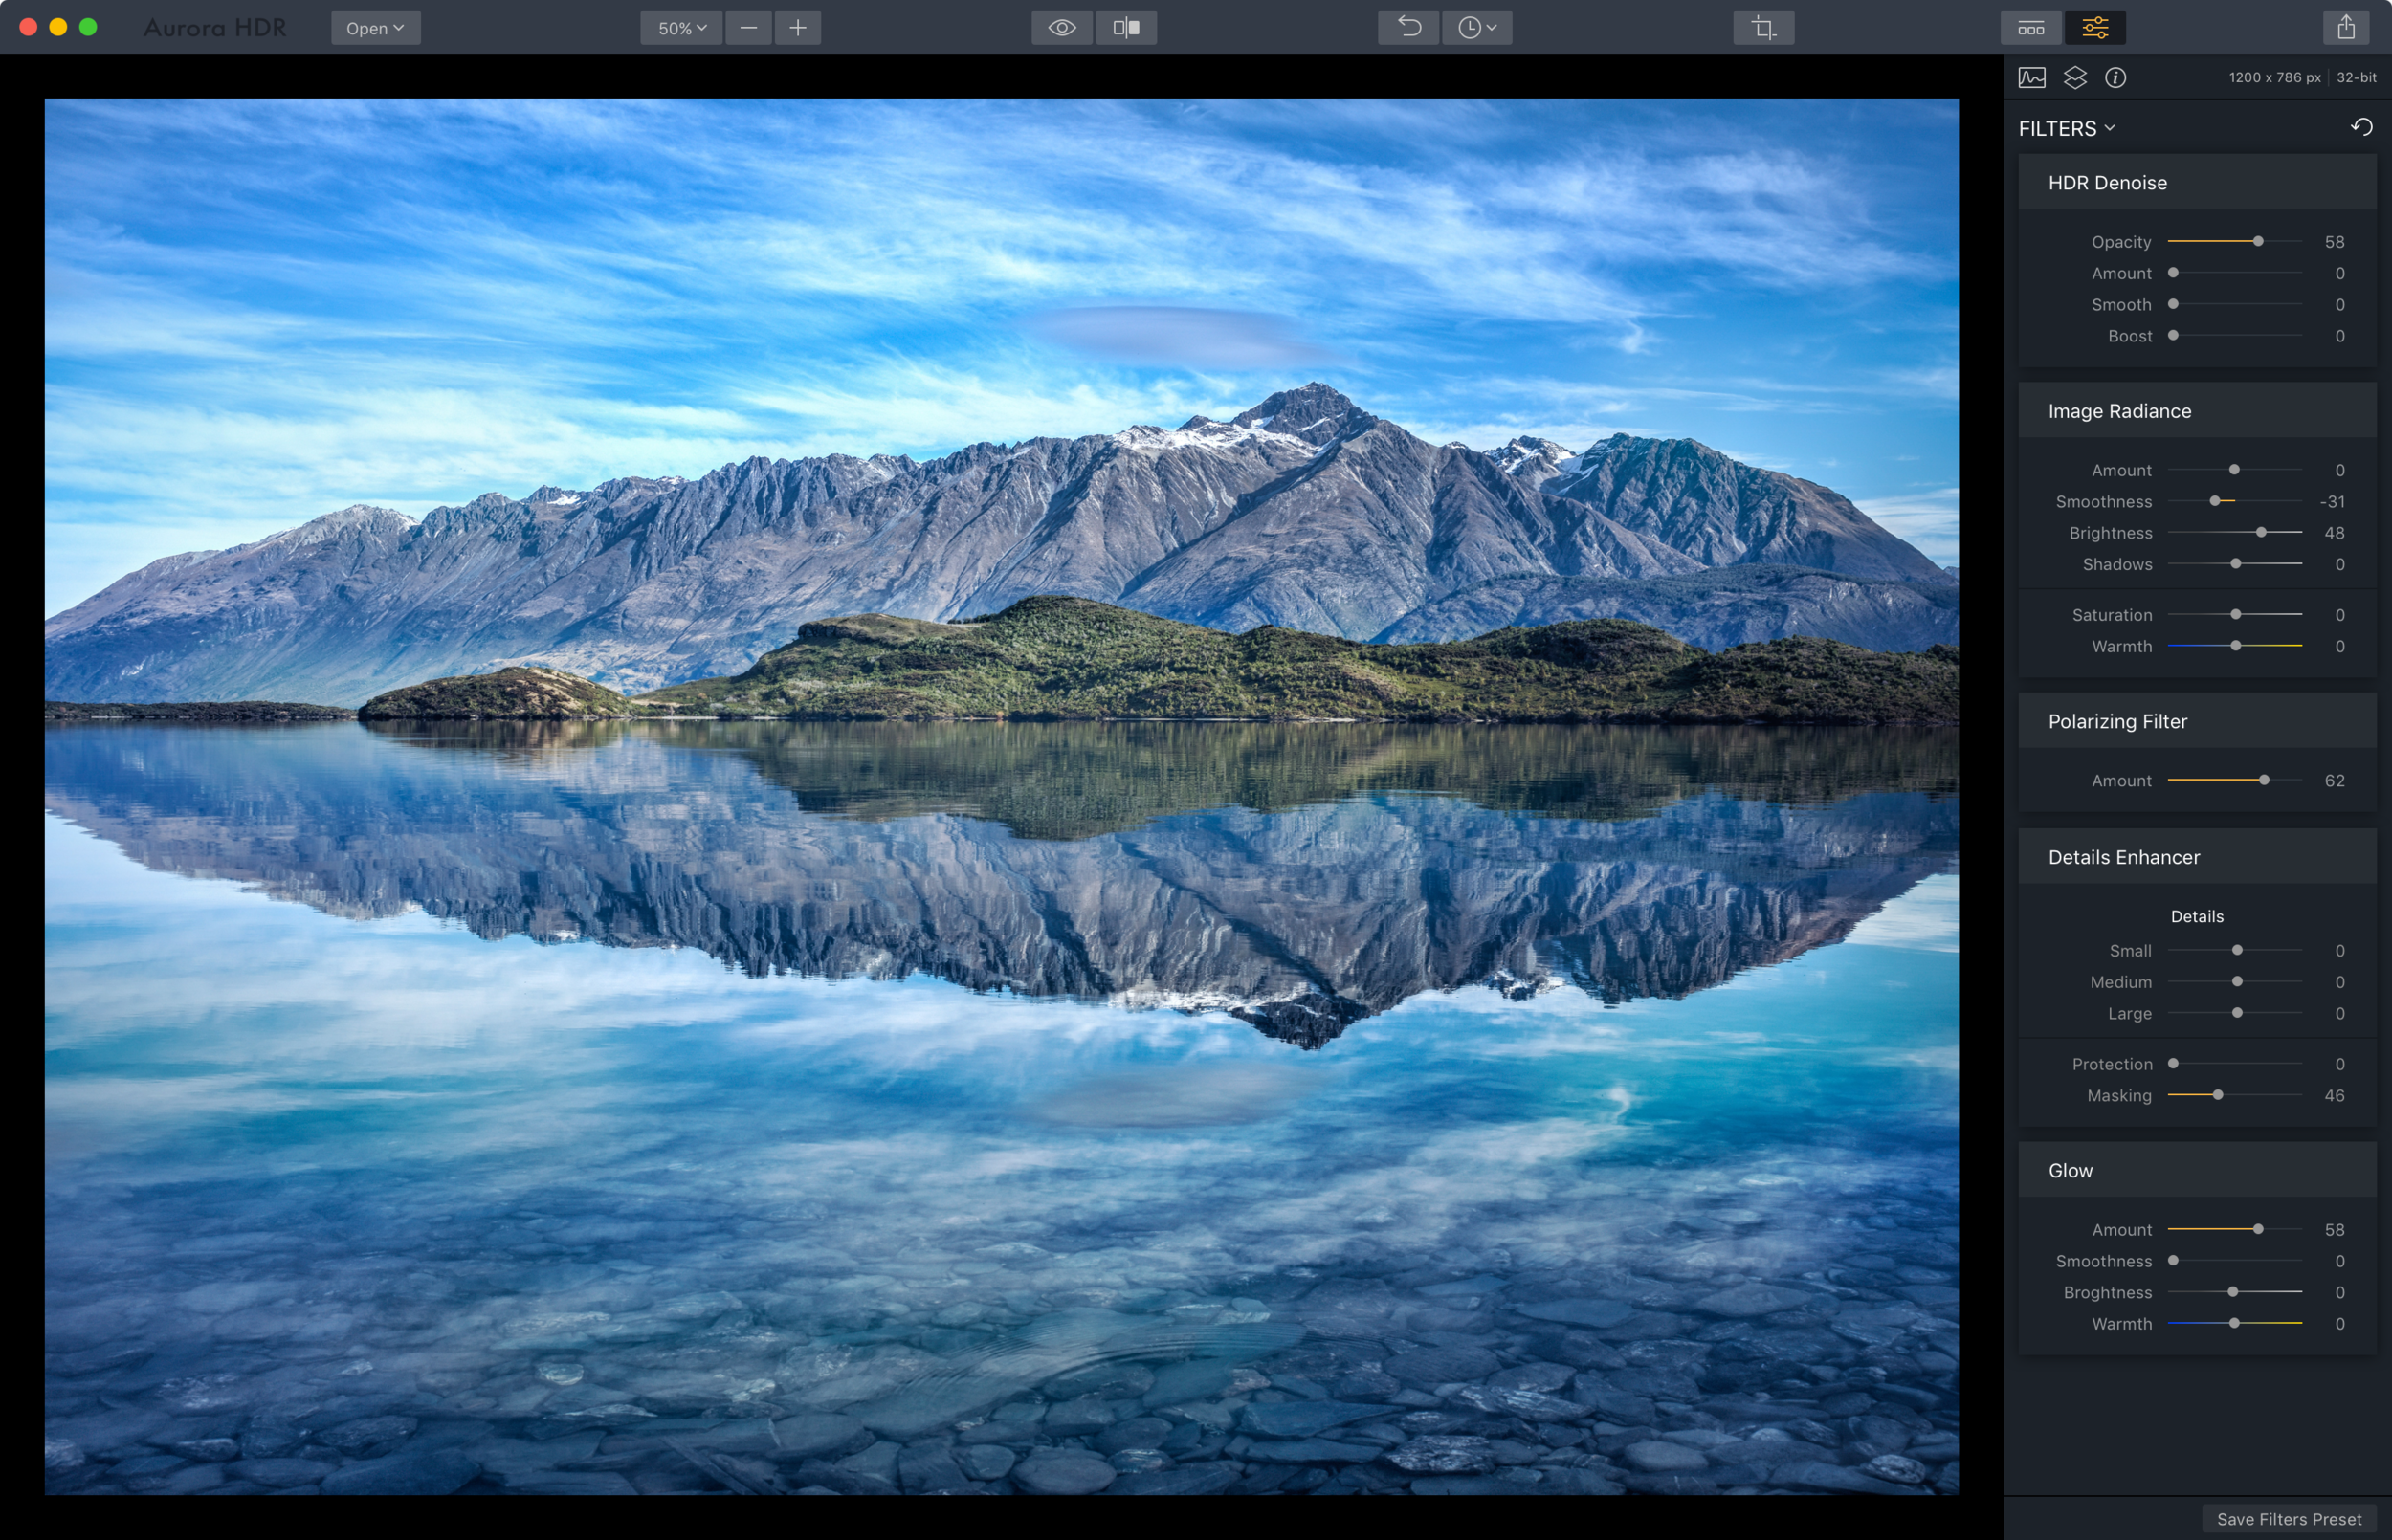 UI Filters_2. Image by Trey Ratcliff.png